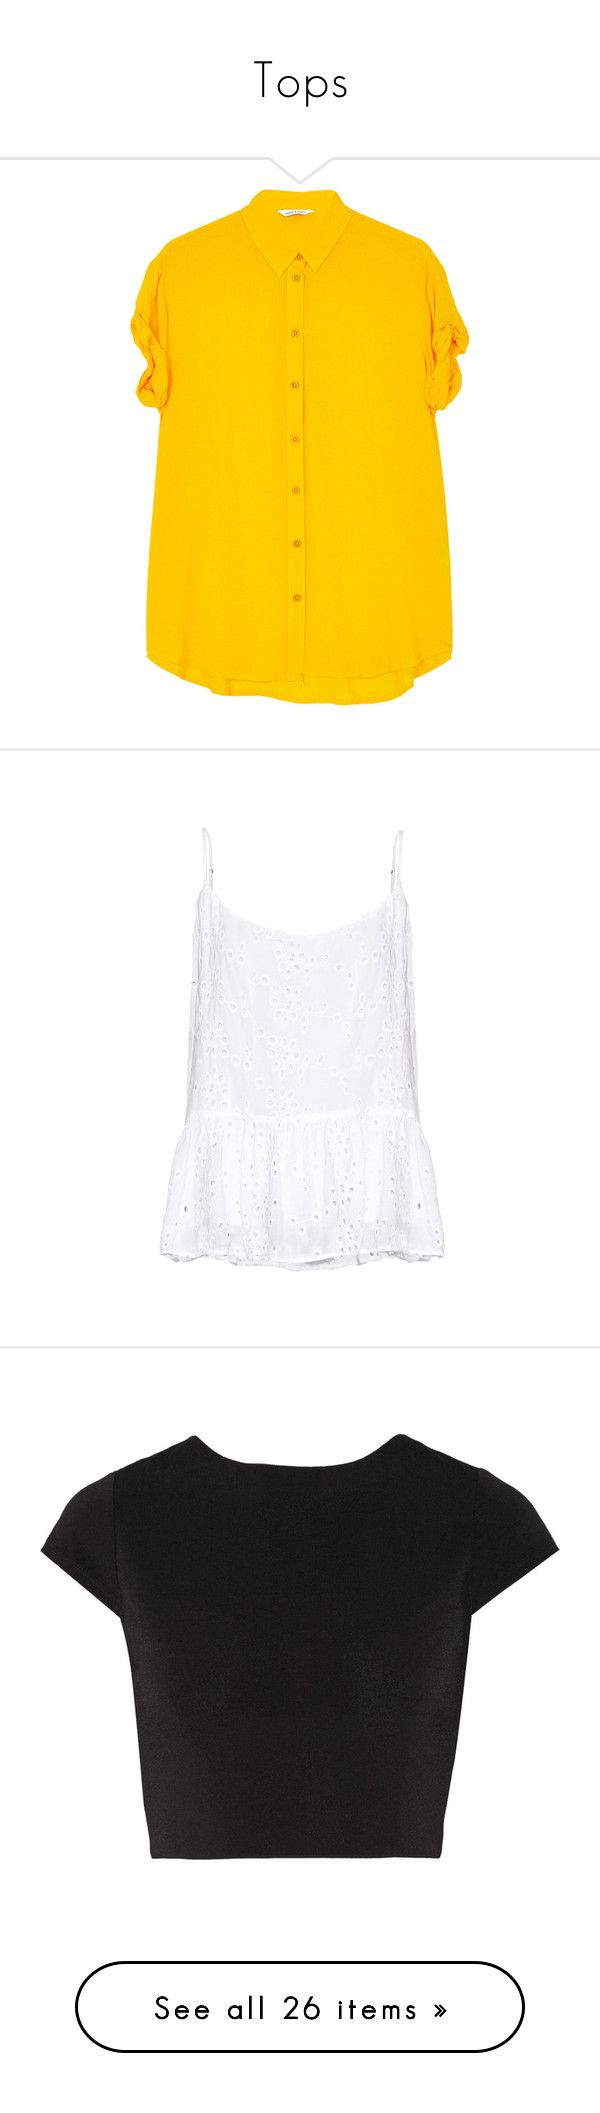 """""""Tops"""" by gina-cremont ❤ liked on Polyvore featuring tops, blouses, yellow, short sleeve tops, crepe top, short sleeve blouse, collar top, collar blouse, shirts and tank tops"""